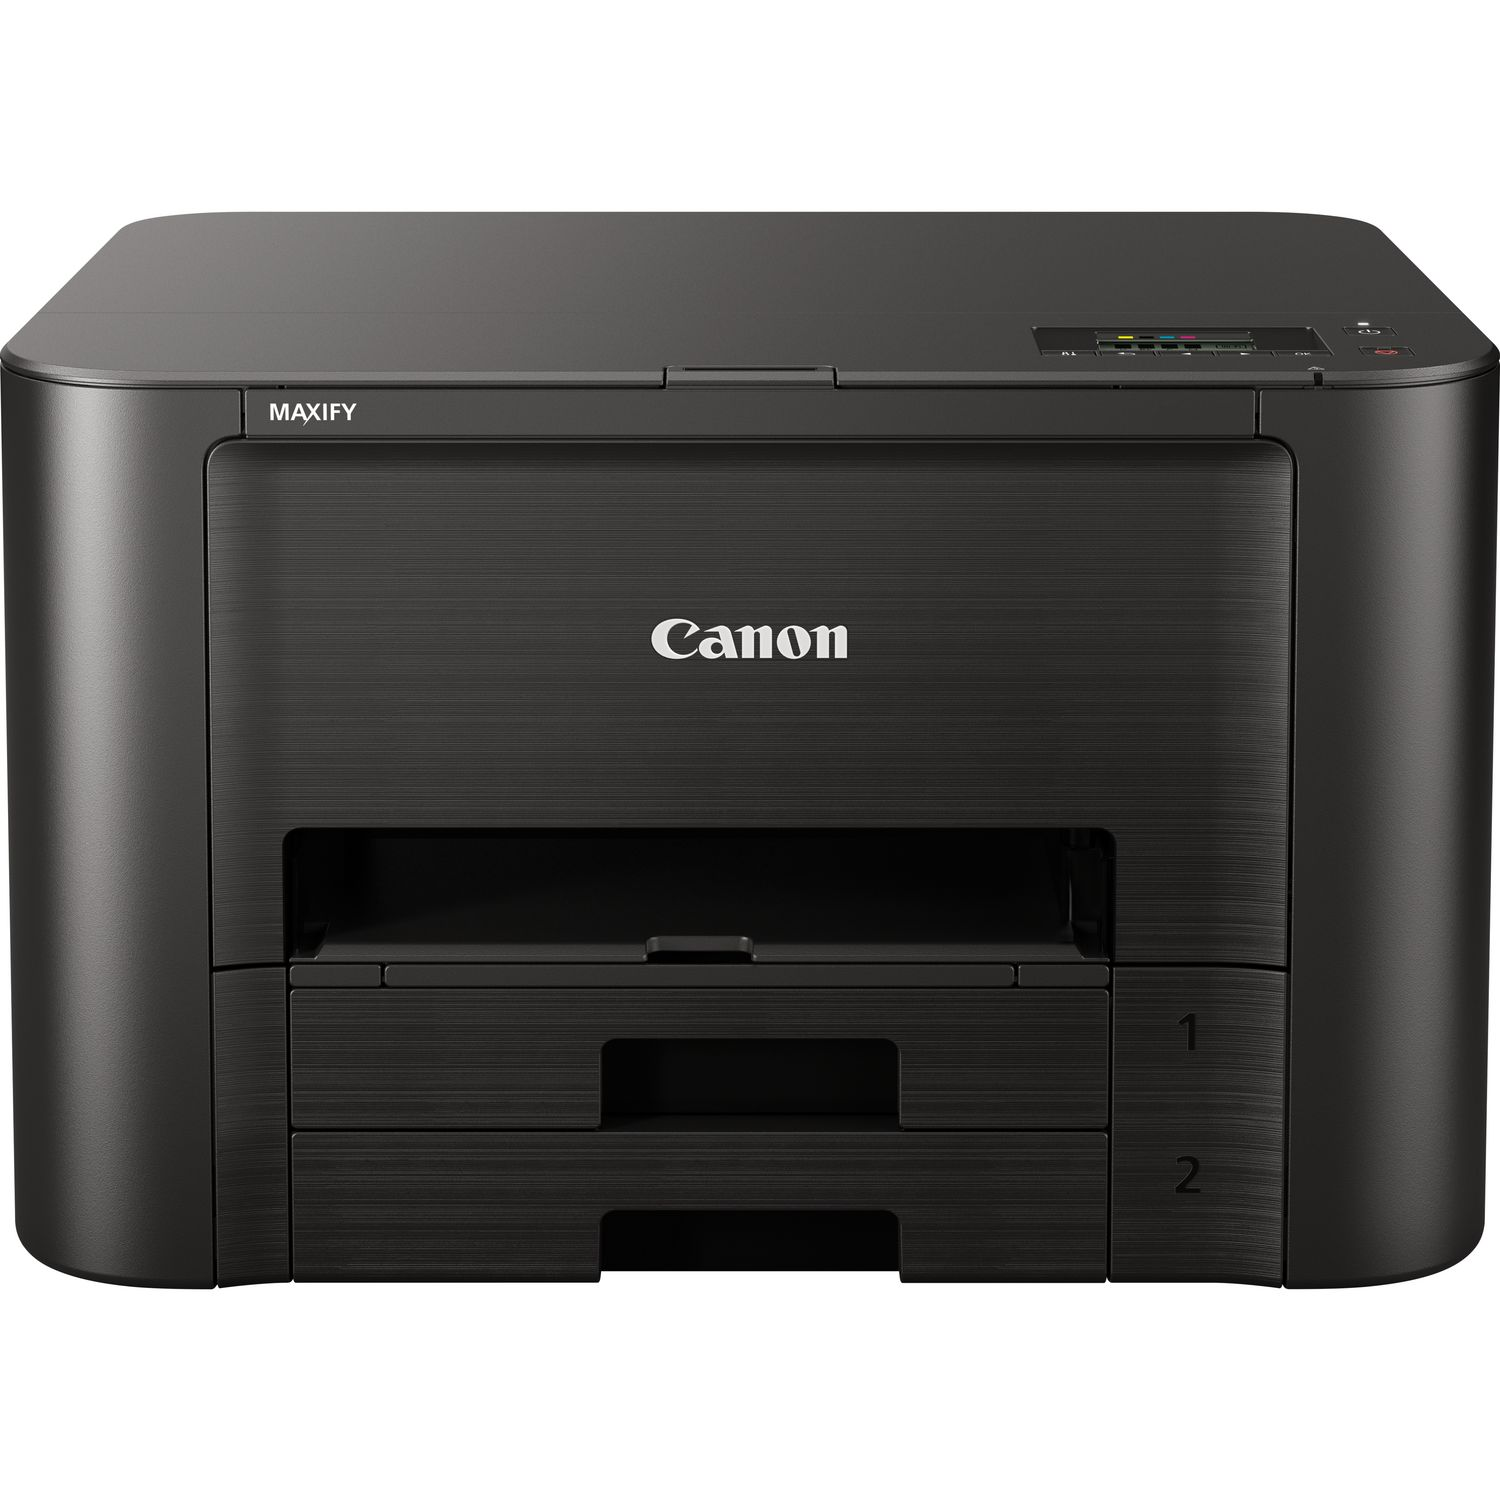 canon maxify ib4050 in wlan drucker canon deutschland shop. Black Bedroom Furniture Sets. Home Design Ideas